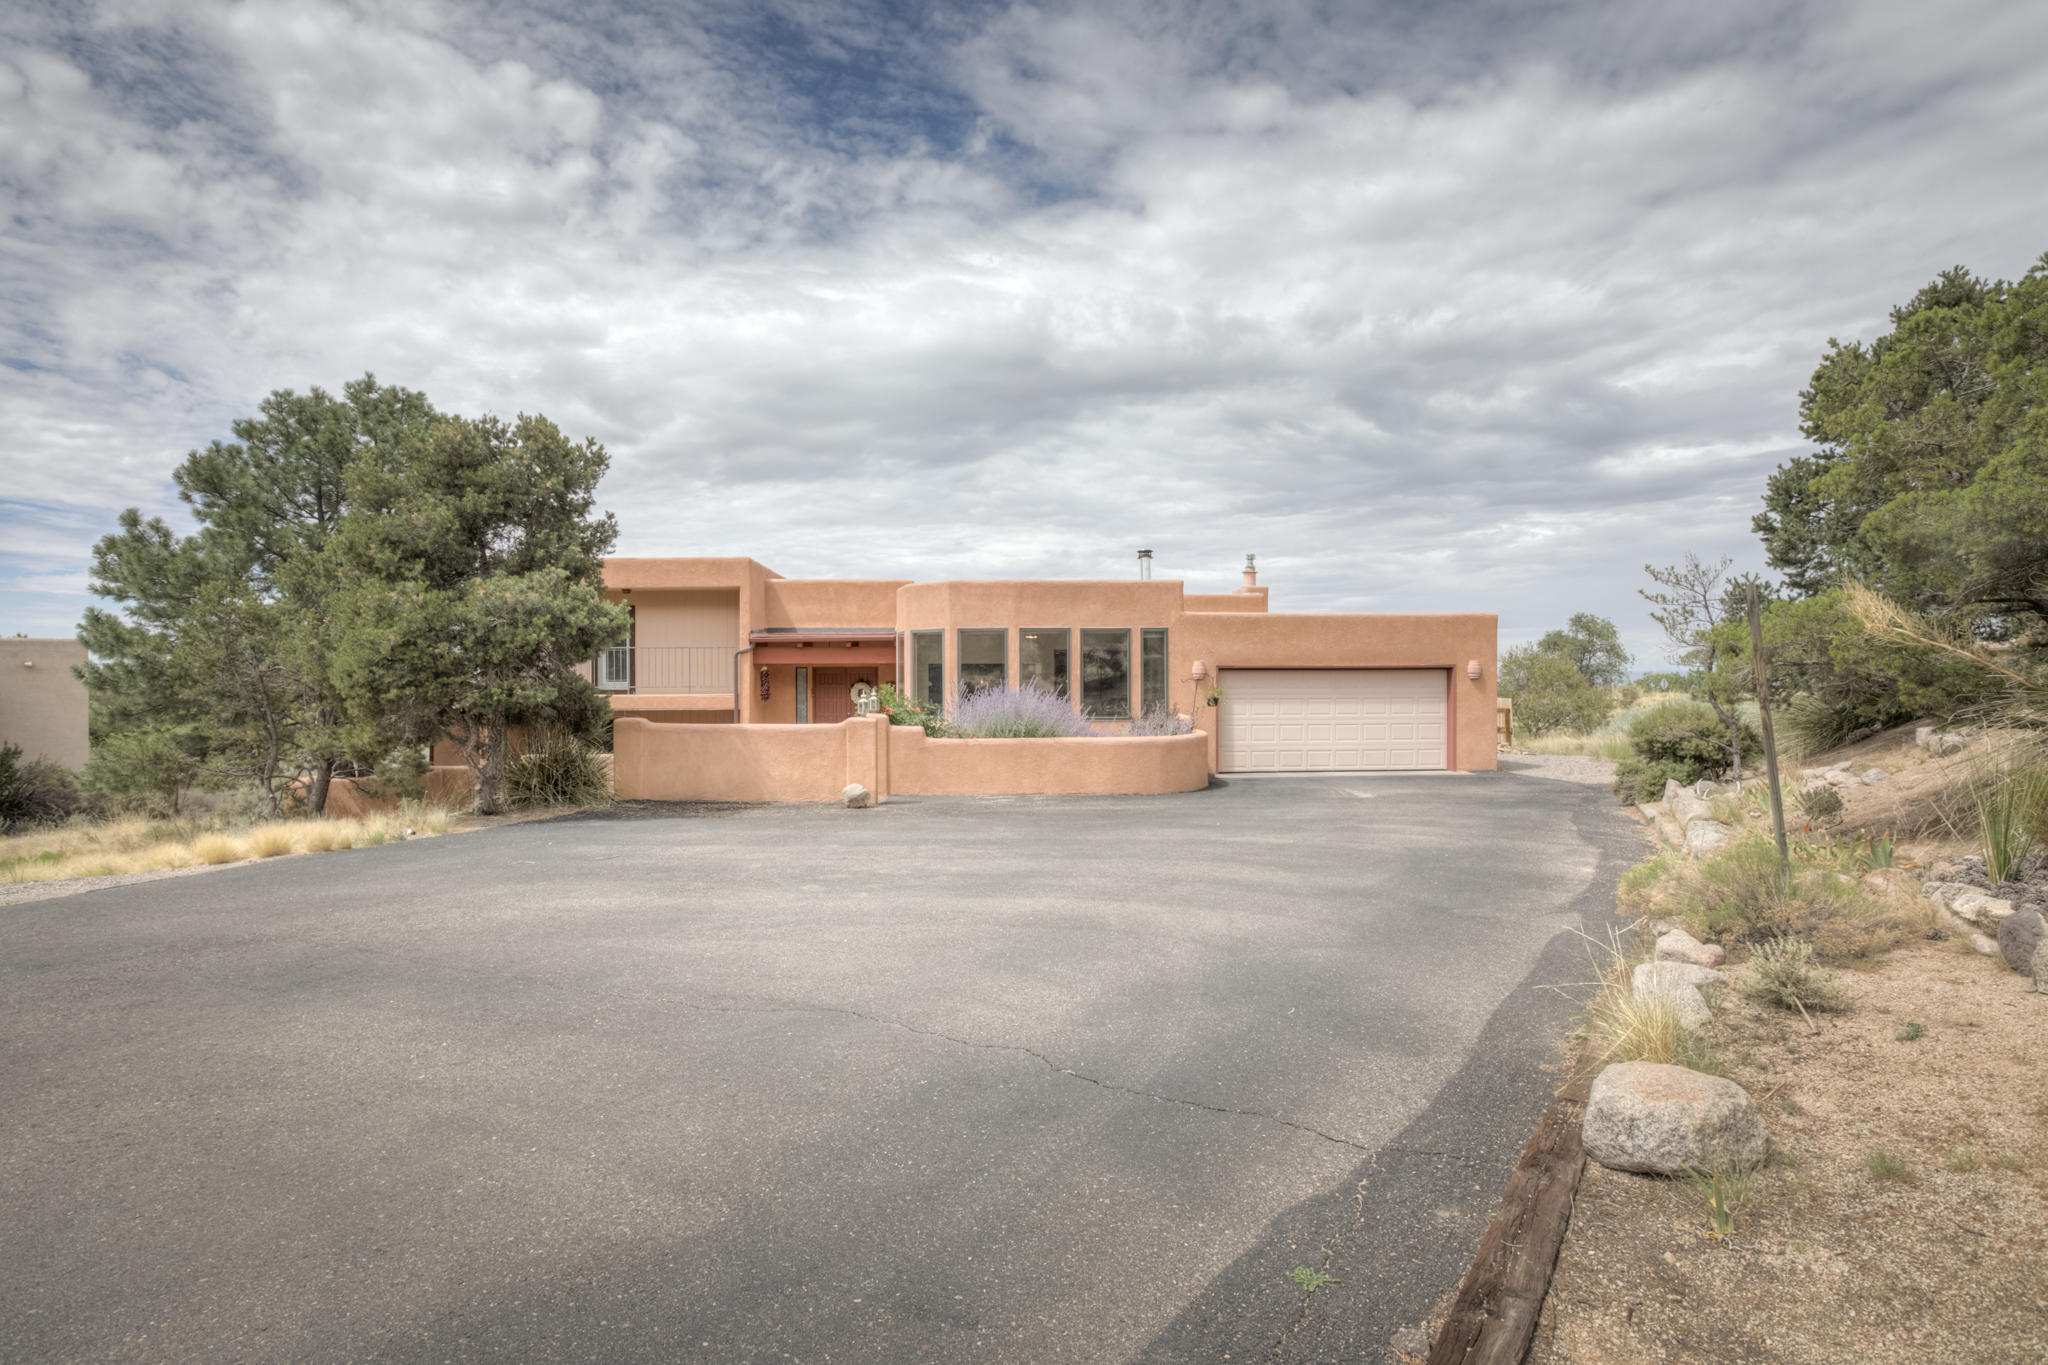 657 ROADRUNNER Lane NE Property Photo - Albuquerque, NM real estate listing